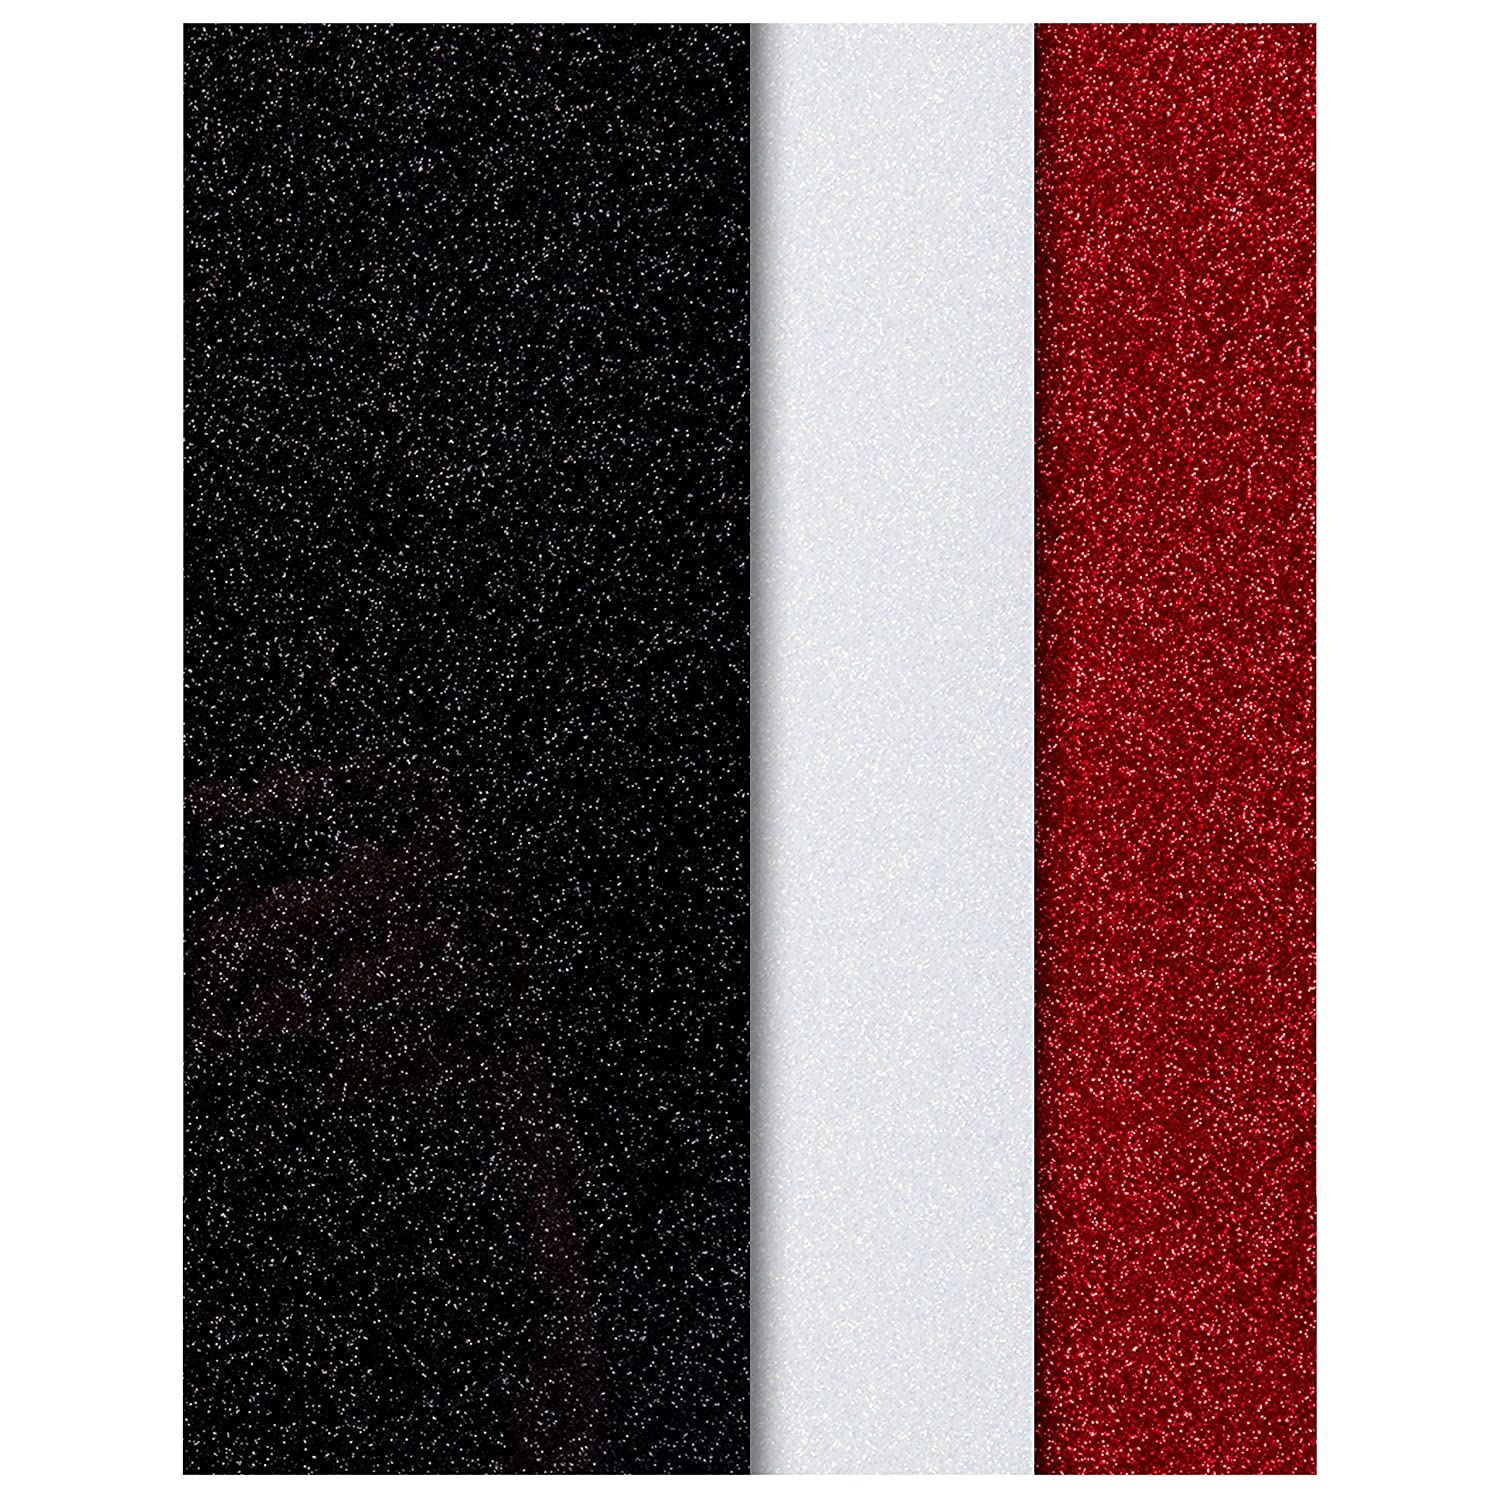 Black, White and Red Glitter HTV Heat Transfer Vinyl Sheets | 3 Pack Bundle | Cricut, Silhouette Cameo, Iron On Or Heat Press Machine | Make Amazing T Shirts | Exceptional Quality | GlitZ VinylZ Model 3G8 - Hand Packed in the USA - 25.6 cm X 24.4 cm (10 1/